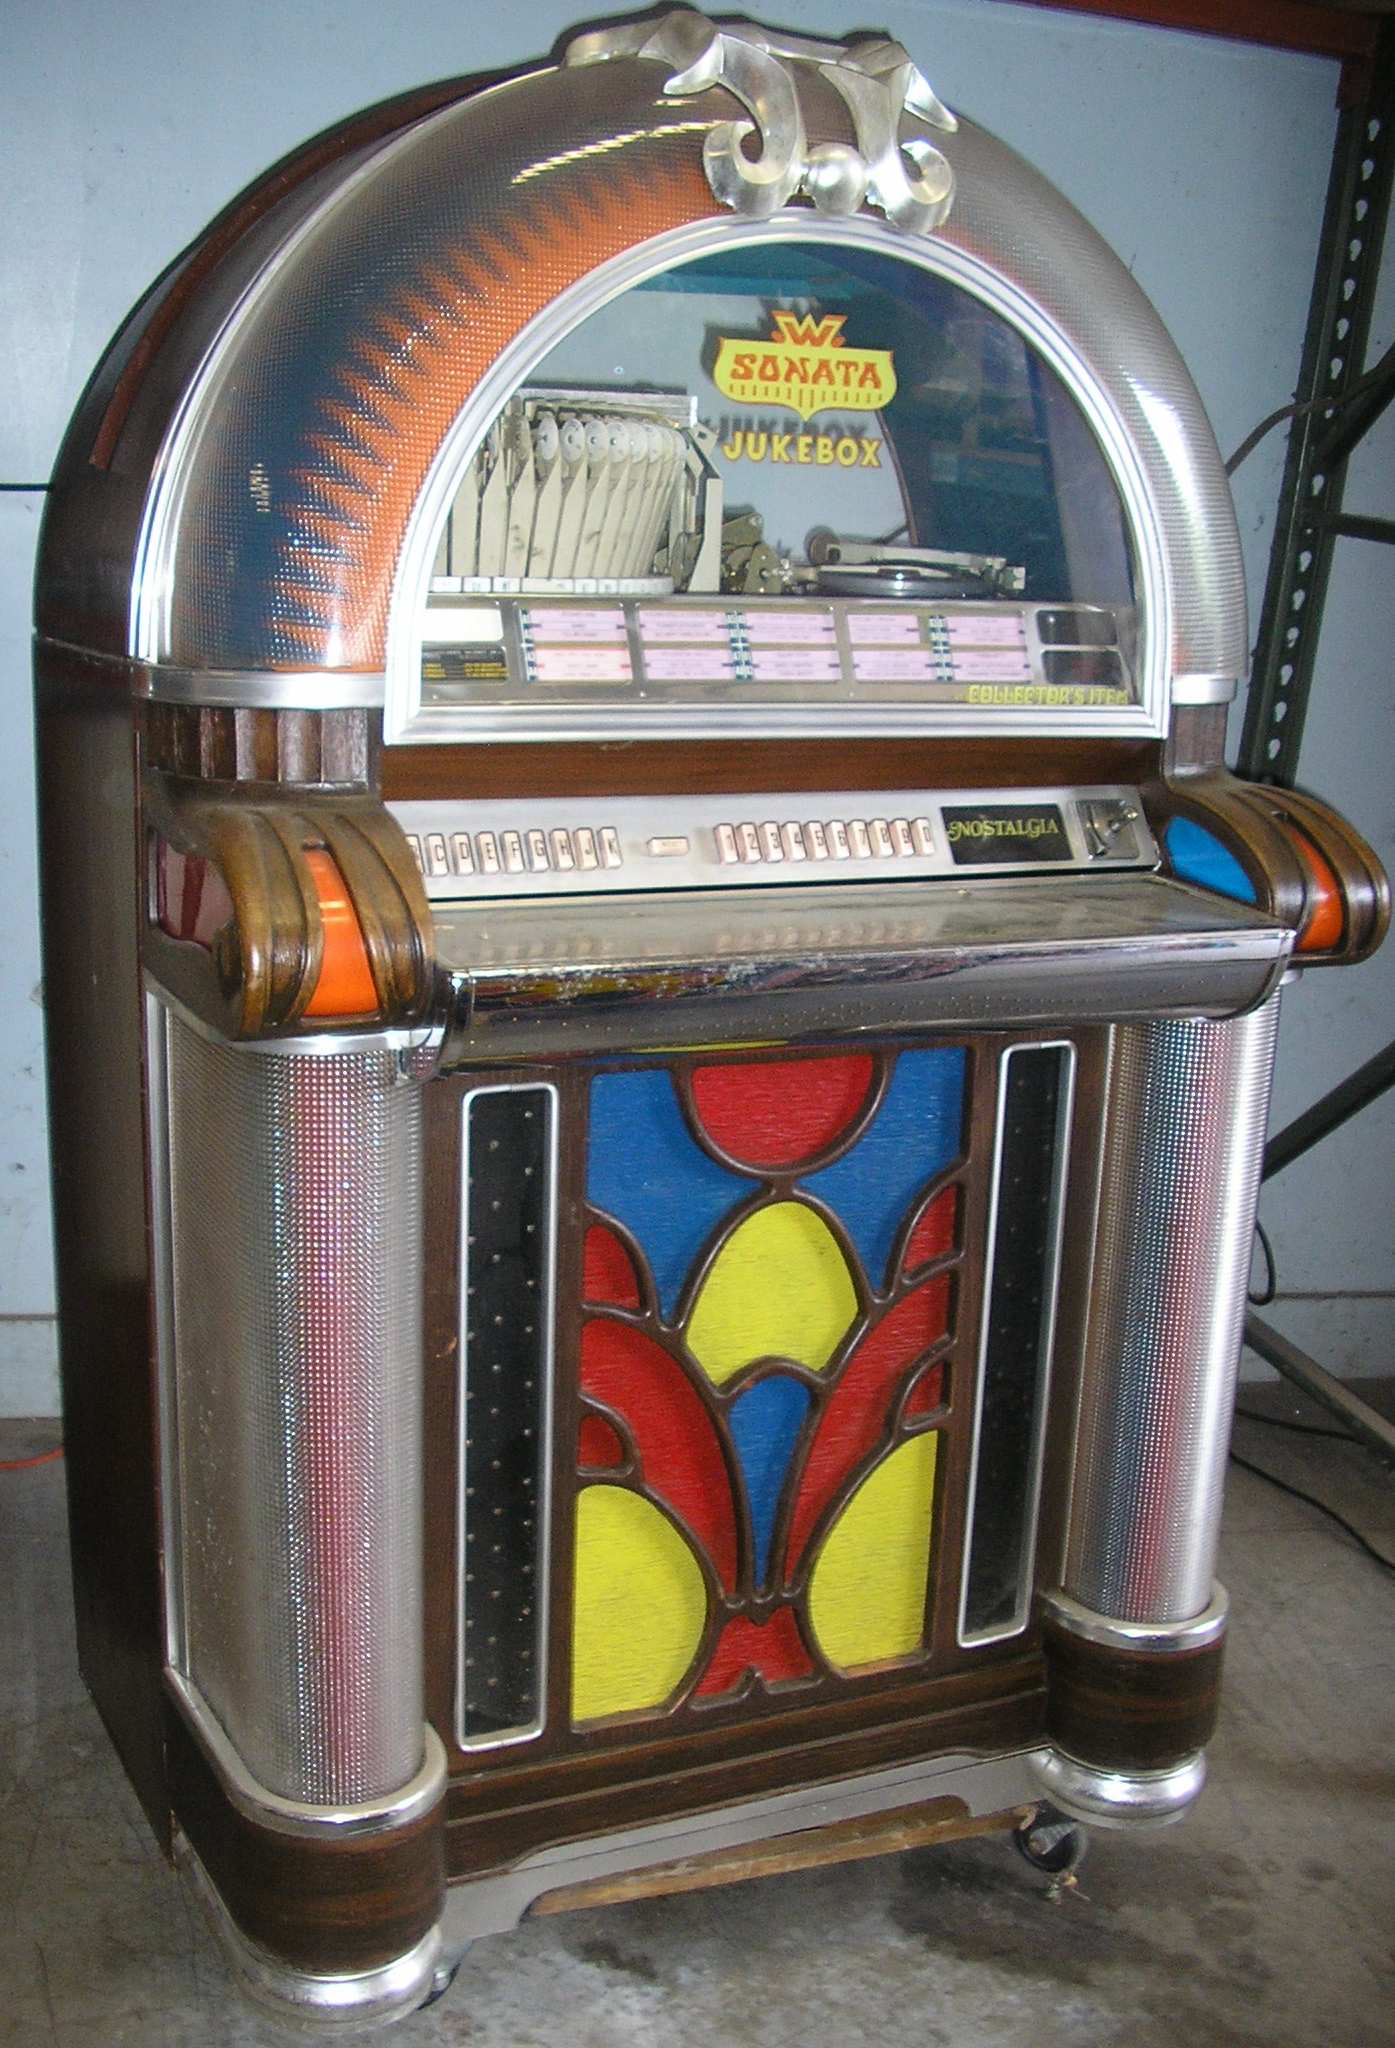 wurlitzer sonata 1050 jukebox for sale play 39 s 45 39 s. Black Bedroom Furniture Sets. Home Design Ideas